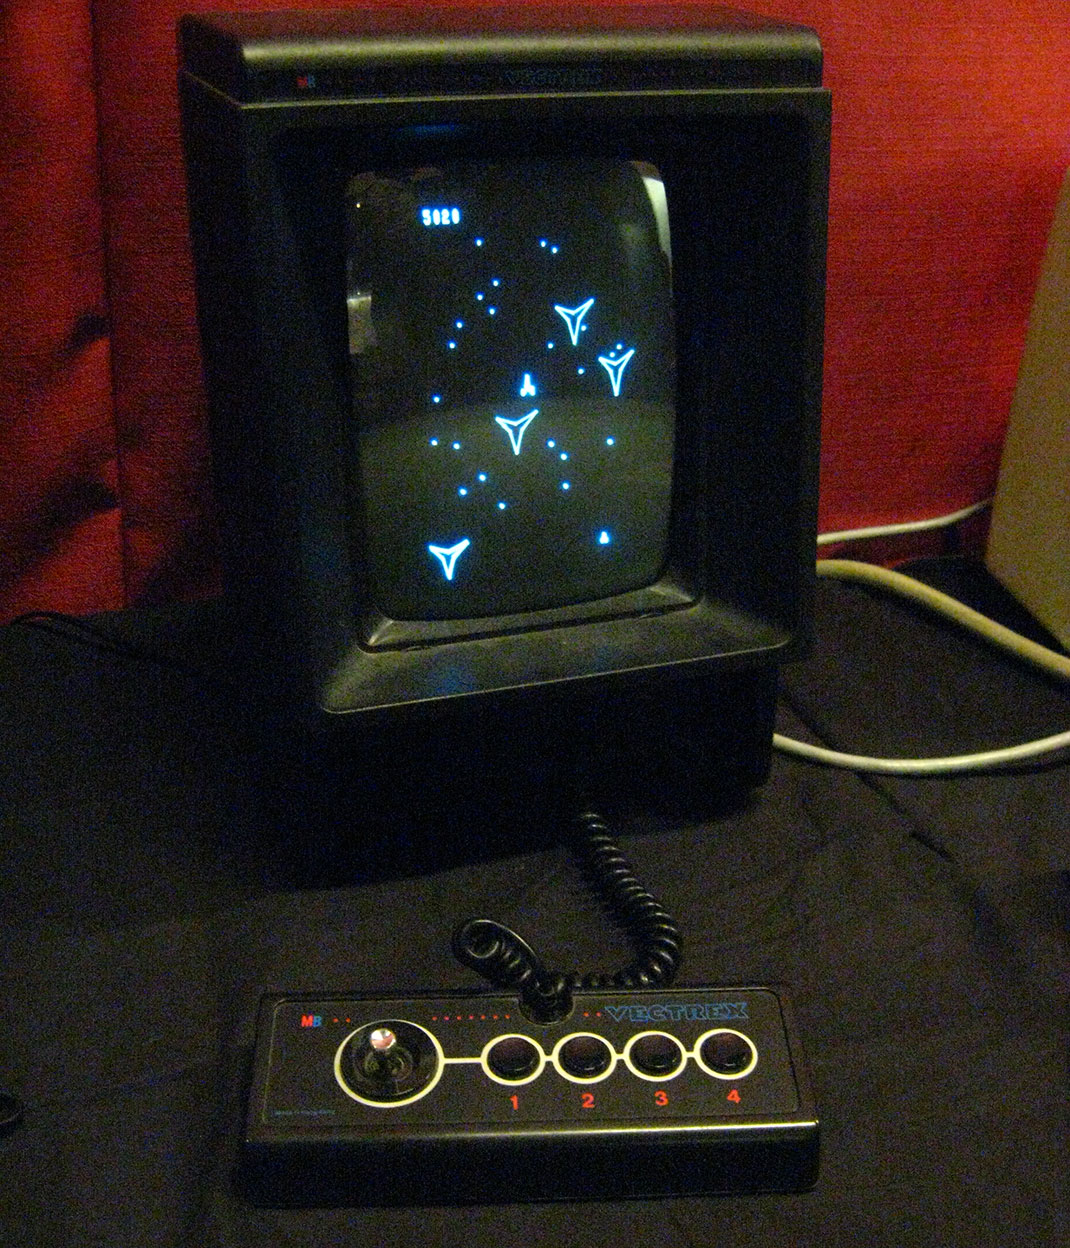 jv-vectrex-game